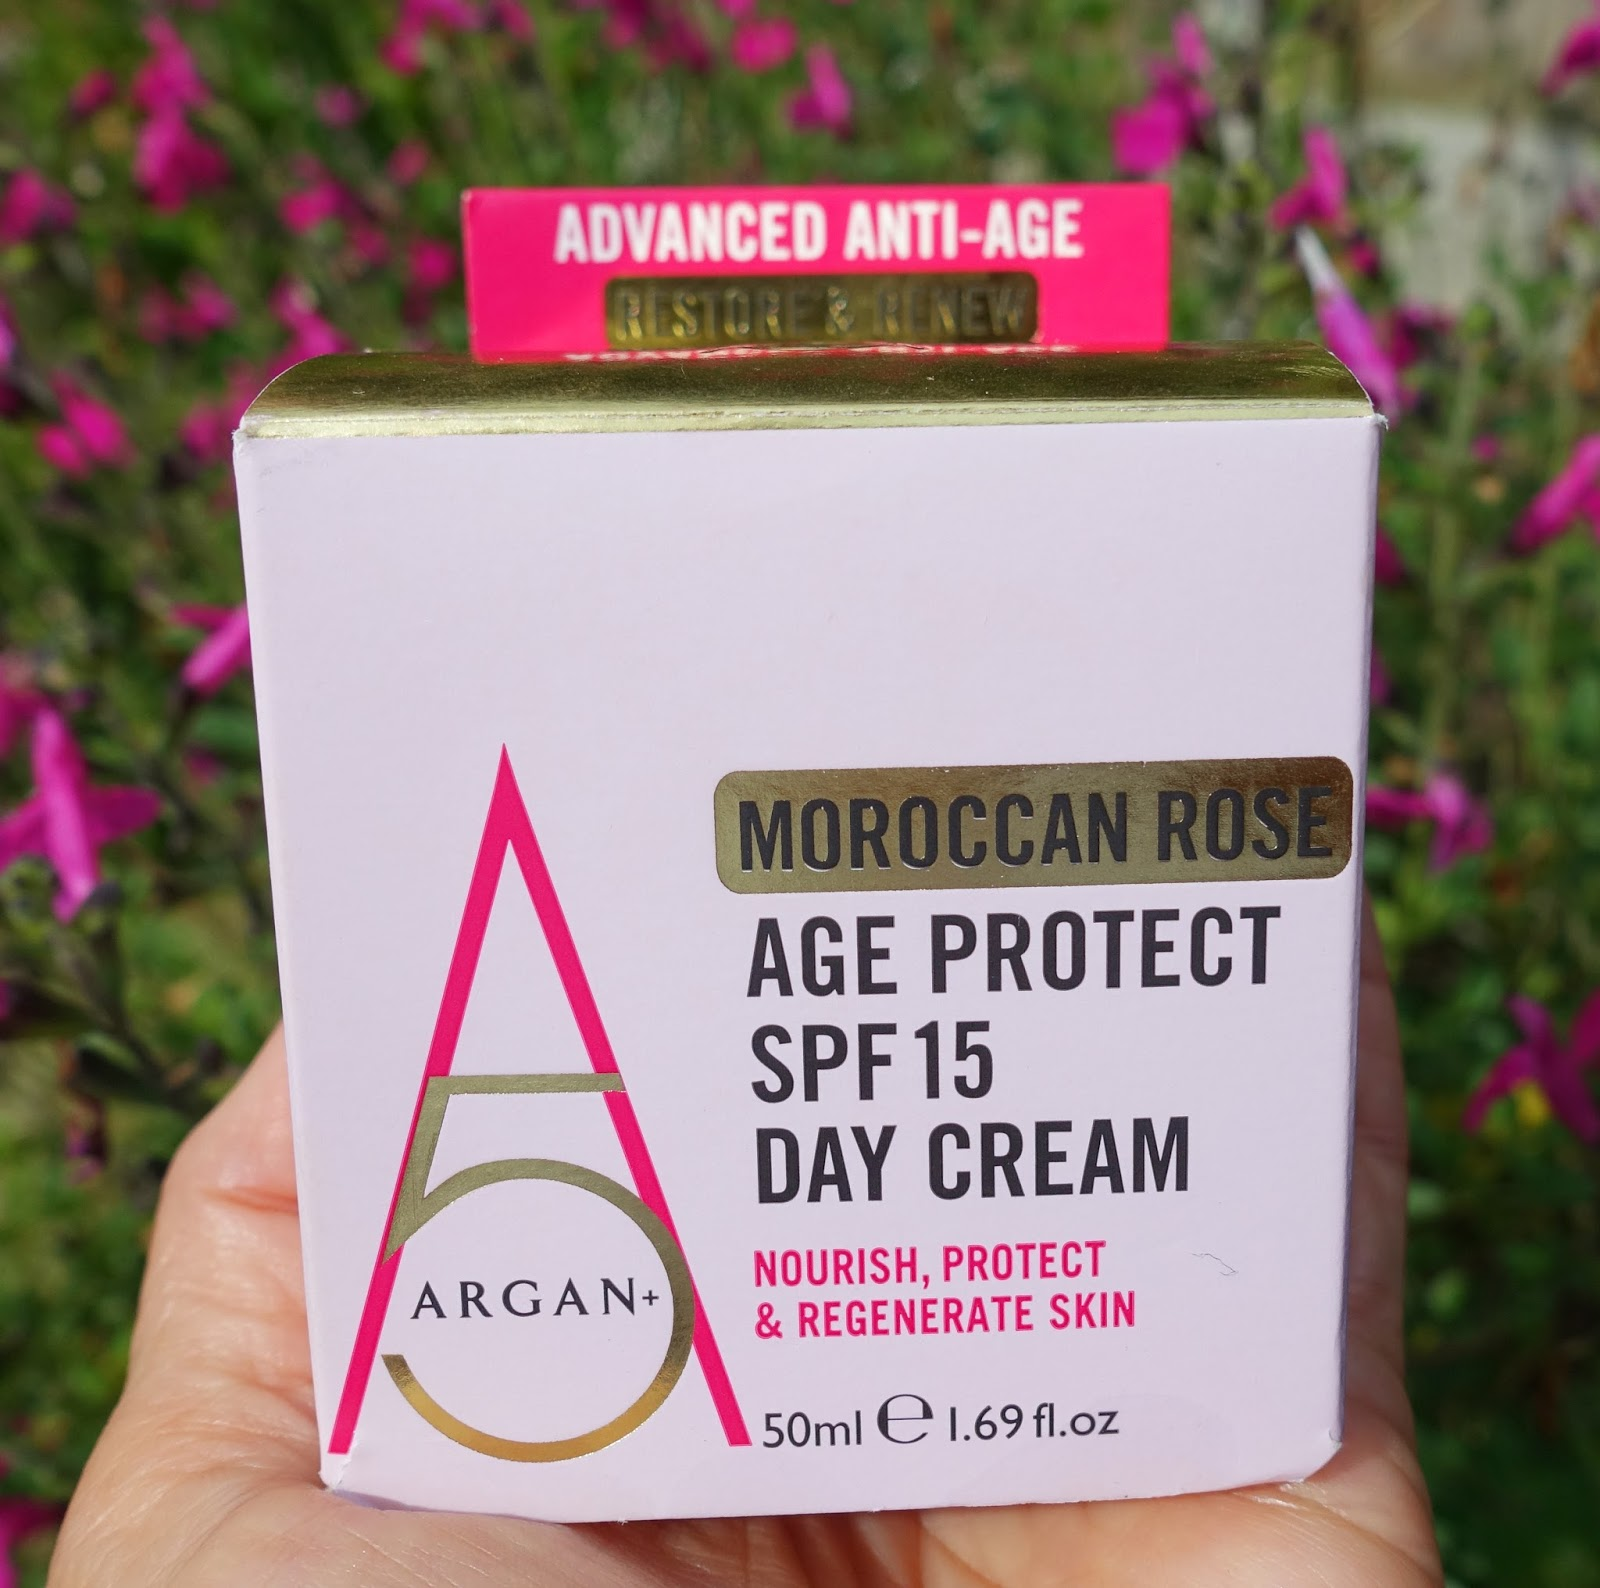 We need more rose! Is This Mutton? reviews Argan Moroccan Rose day cream